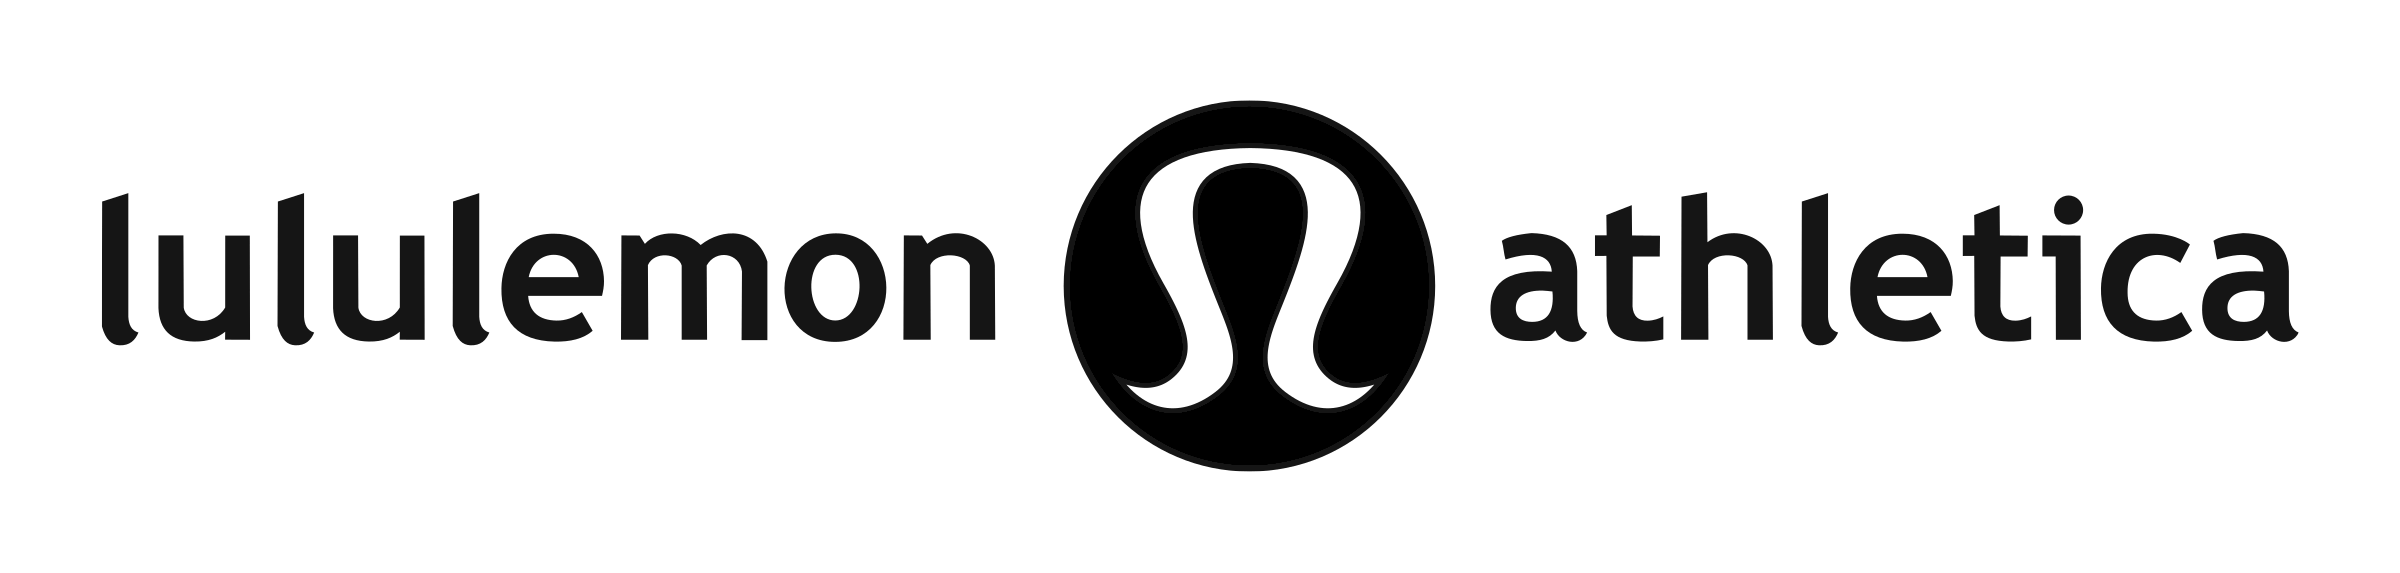 lululemon athleticaShop Online Only (at this time)